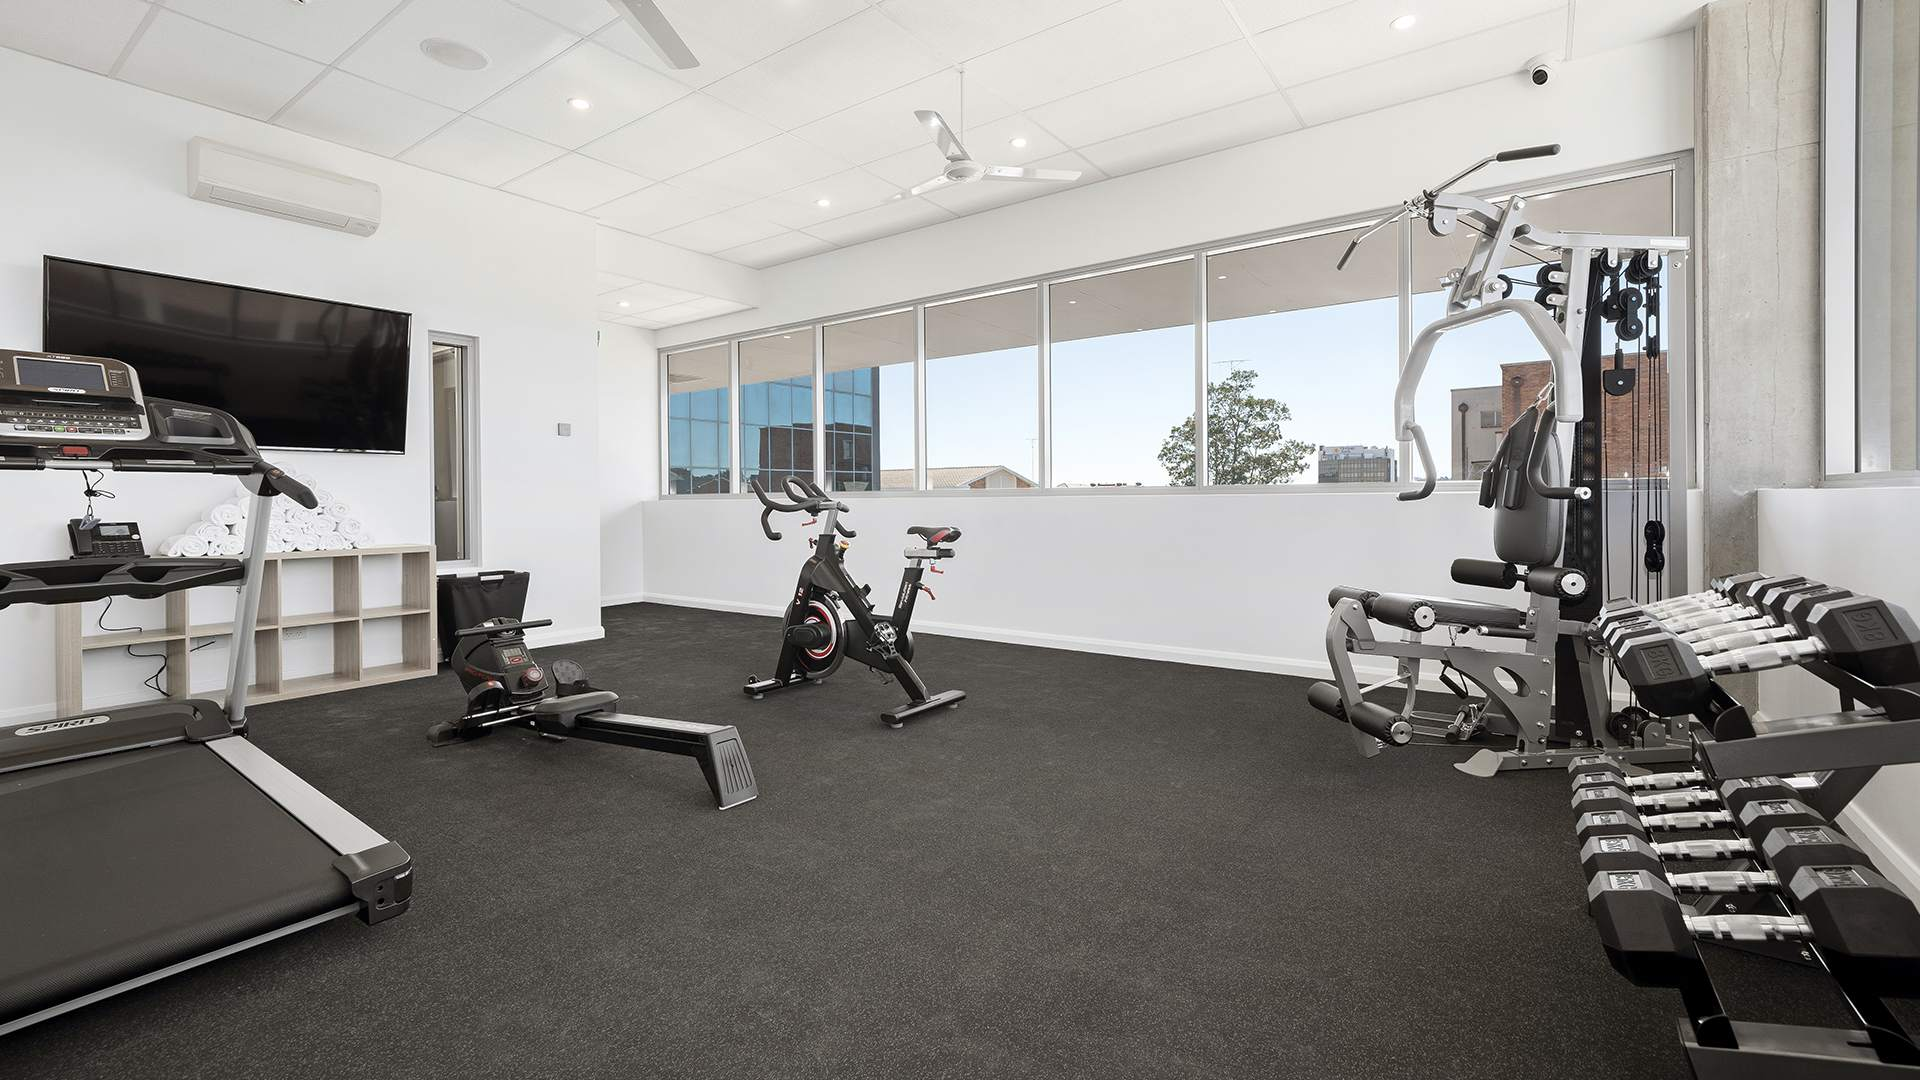 View of gym equipment and facilities within Oaks Toowoomba Hotel